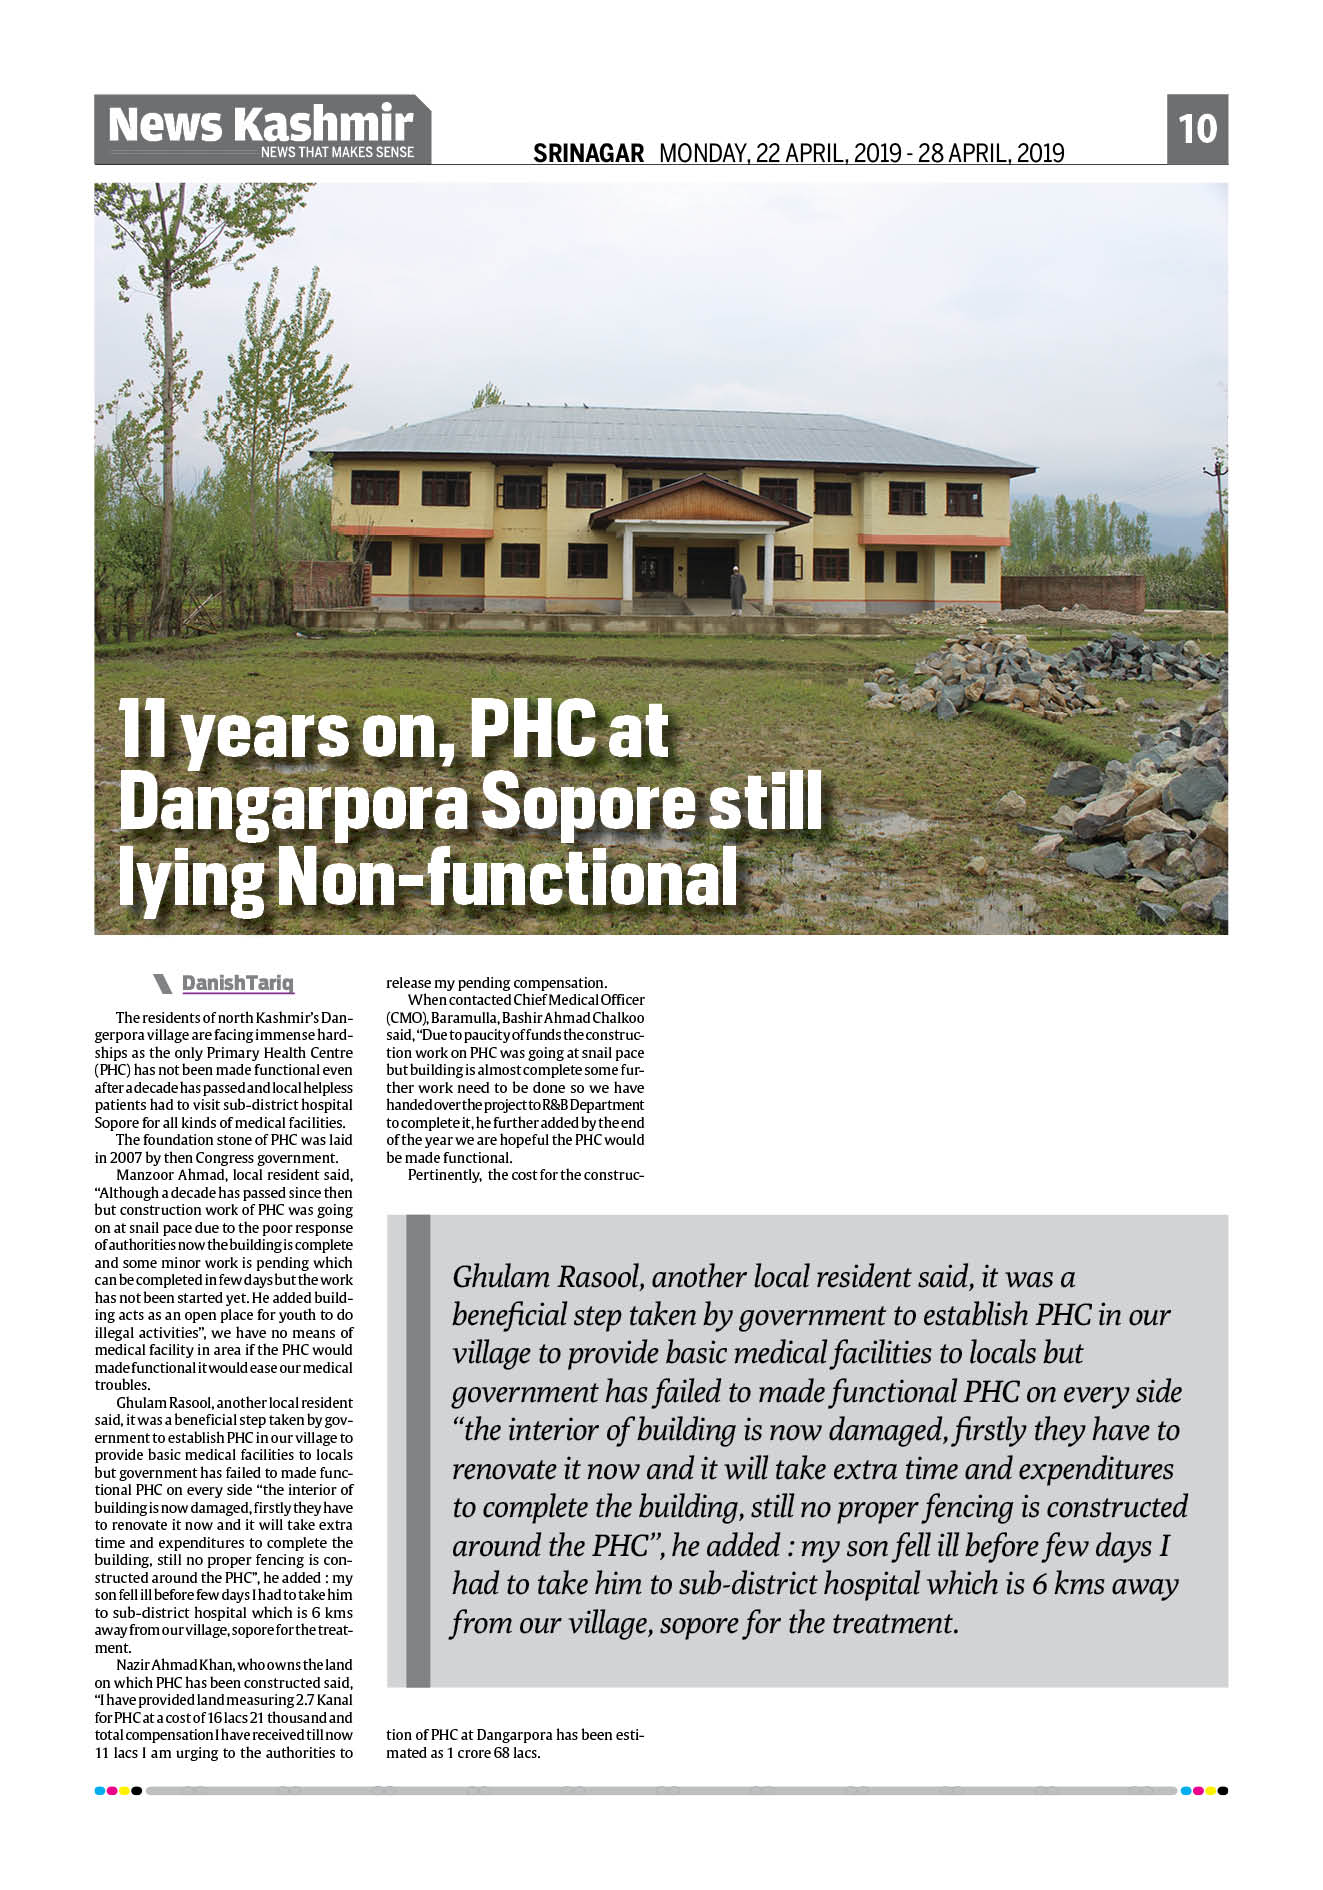 11 years on ,PHC at Dangarpora Sopore still lying Non -functional